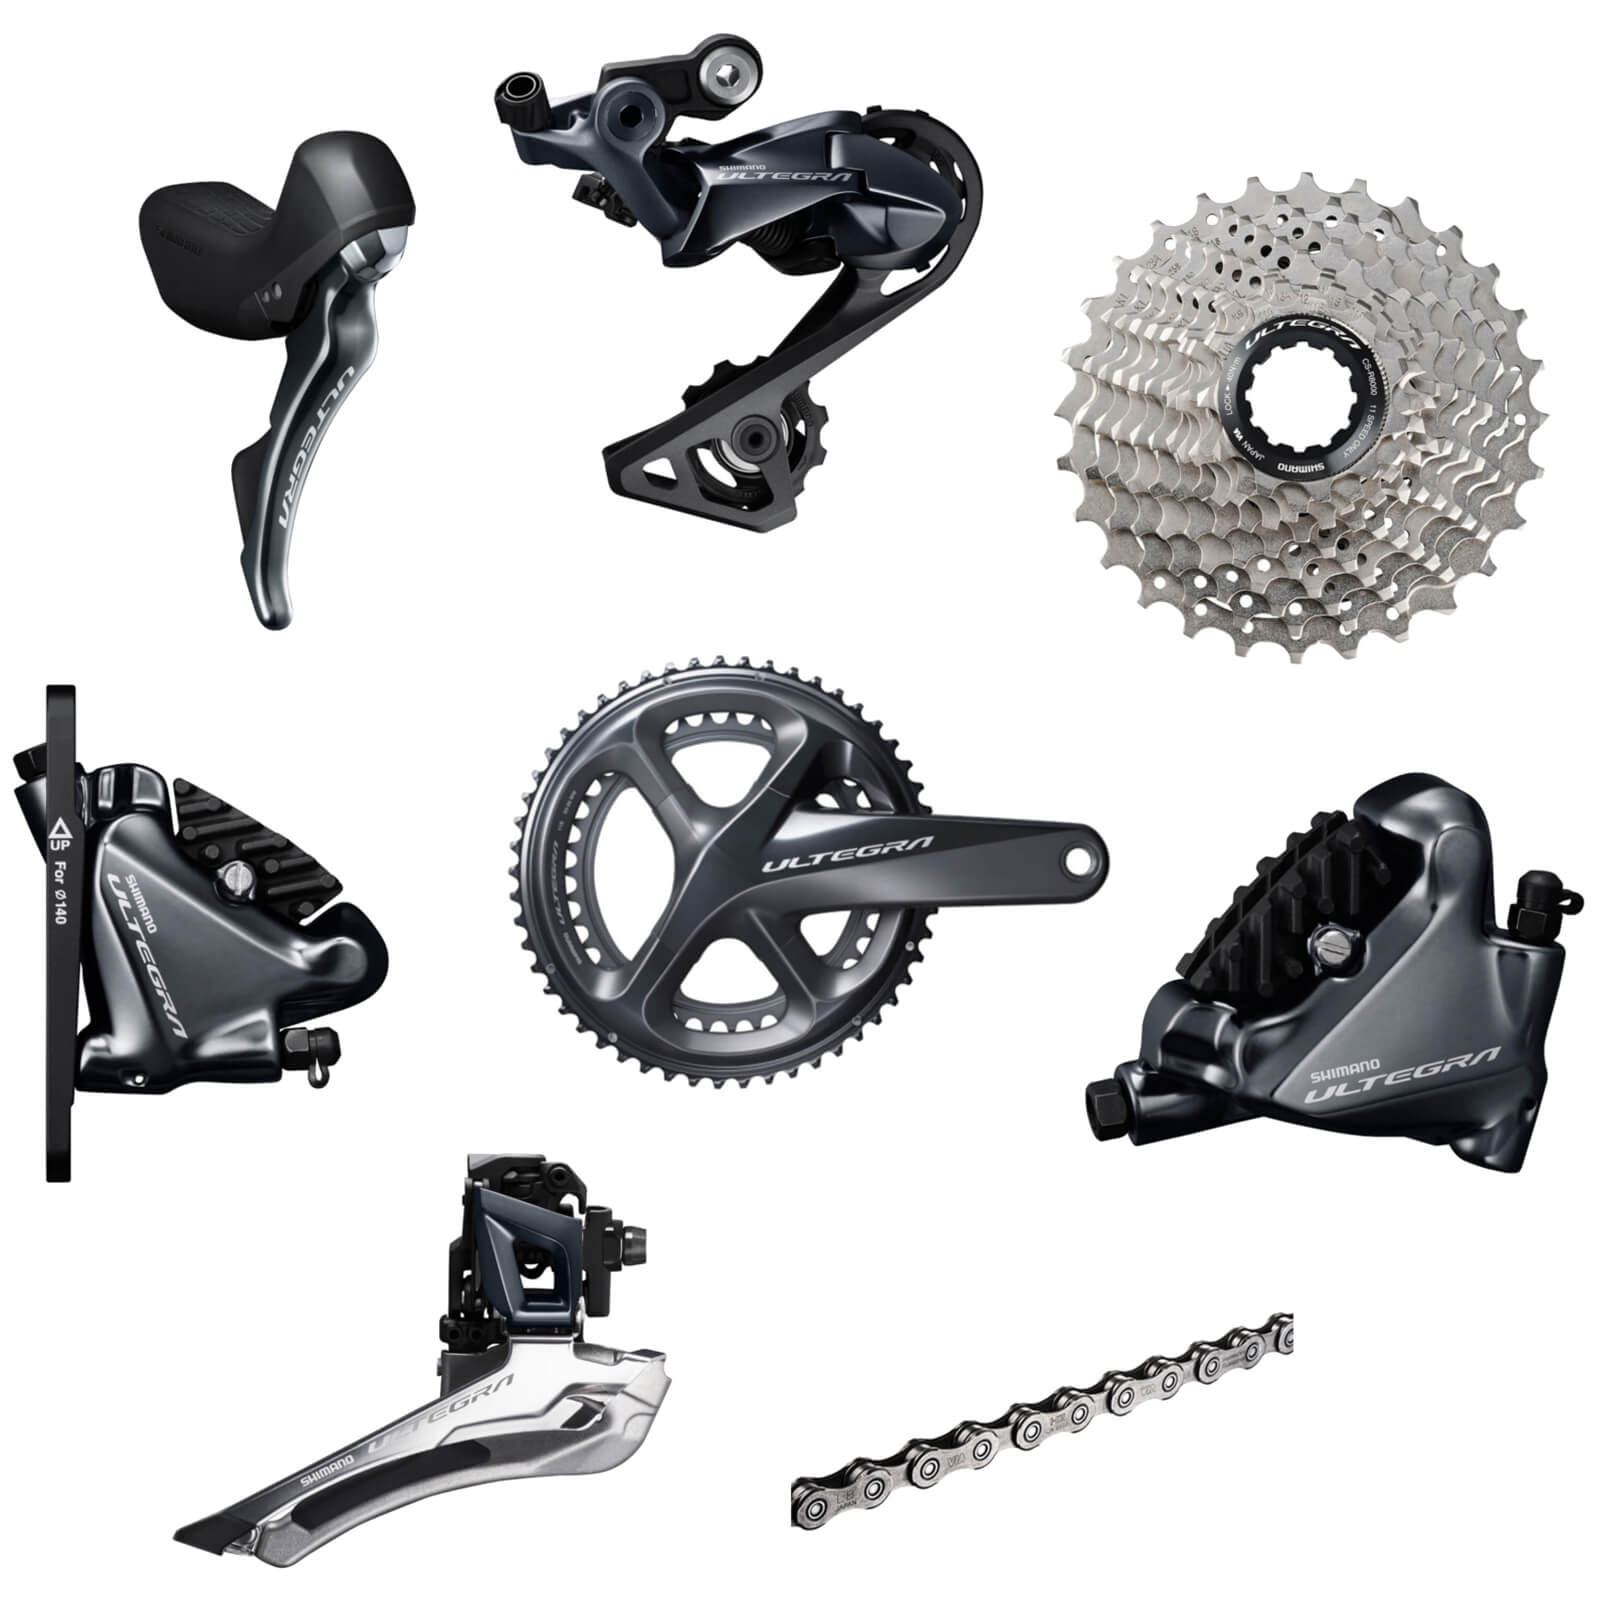 Shimano Ultegra R8020 Mechanical Groupset - Hydraulic Flat Mount Brakes